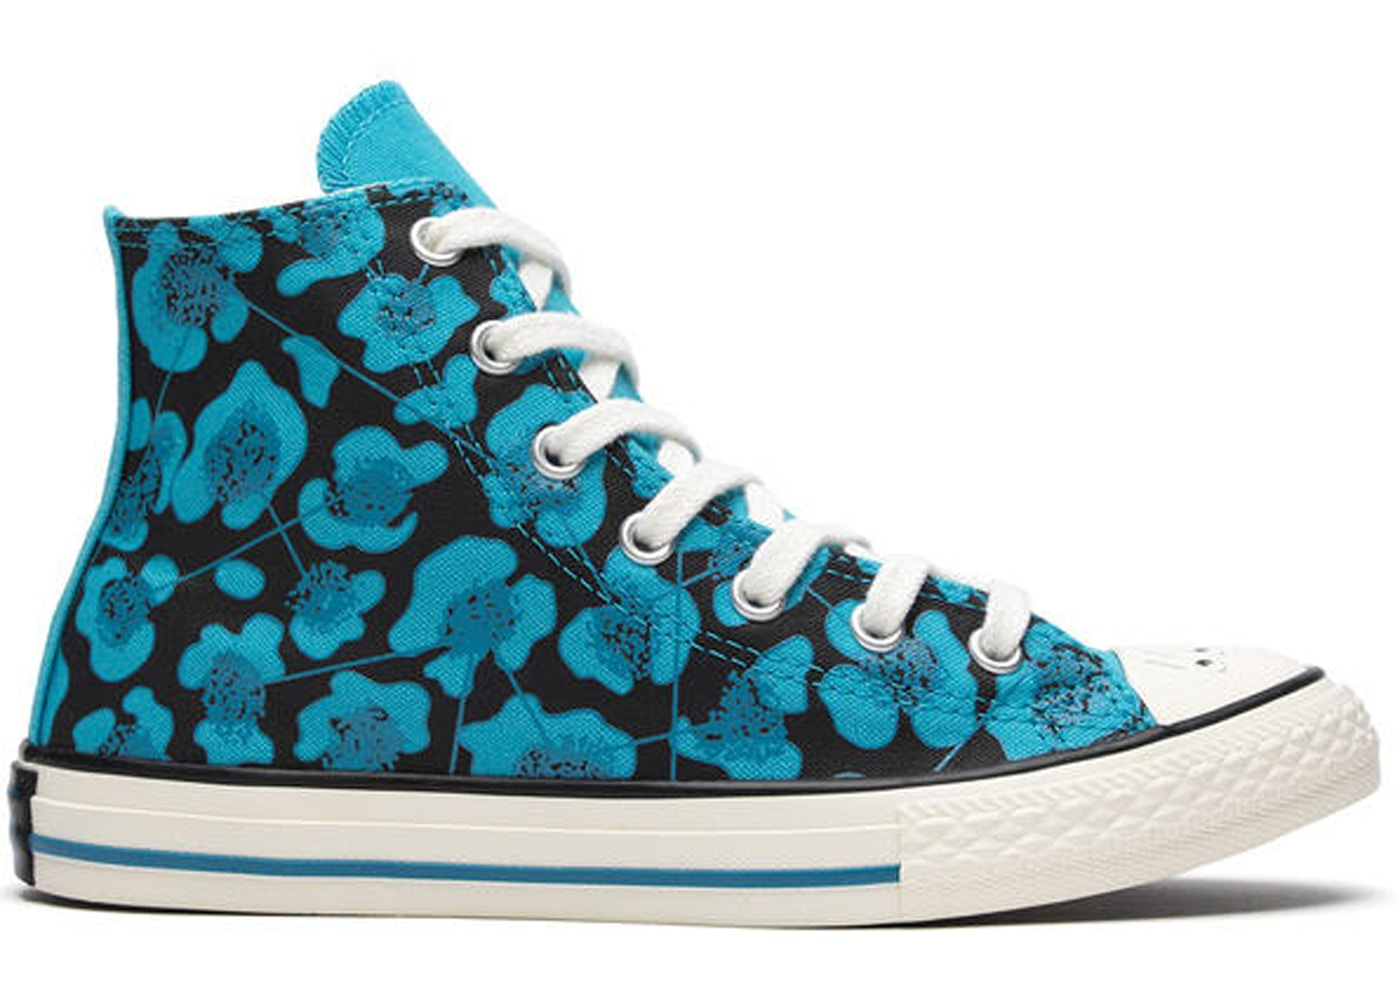 da384c163f7b Converse Chuck Taylor All-Star 70s Hi Dr. Woo Wear to Reveal Blue ...